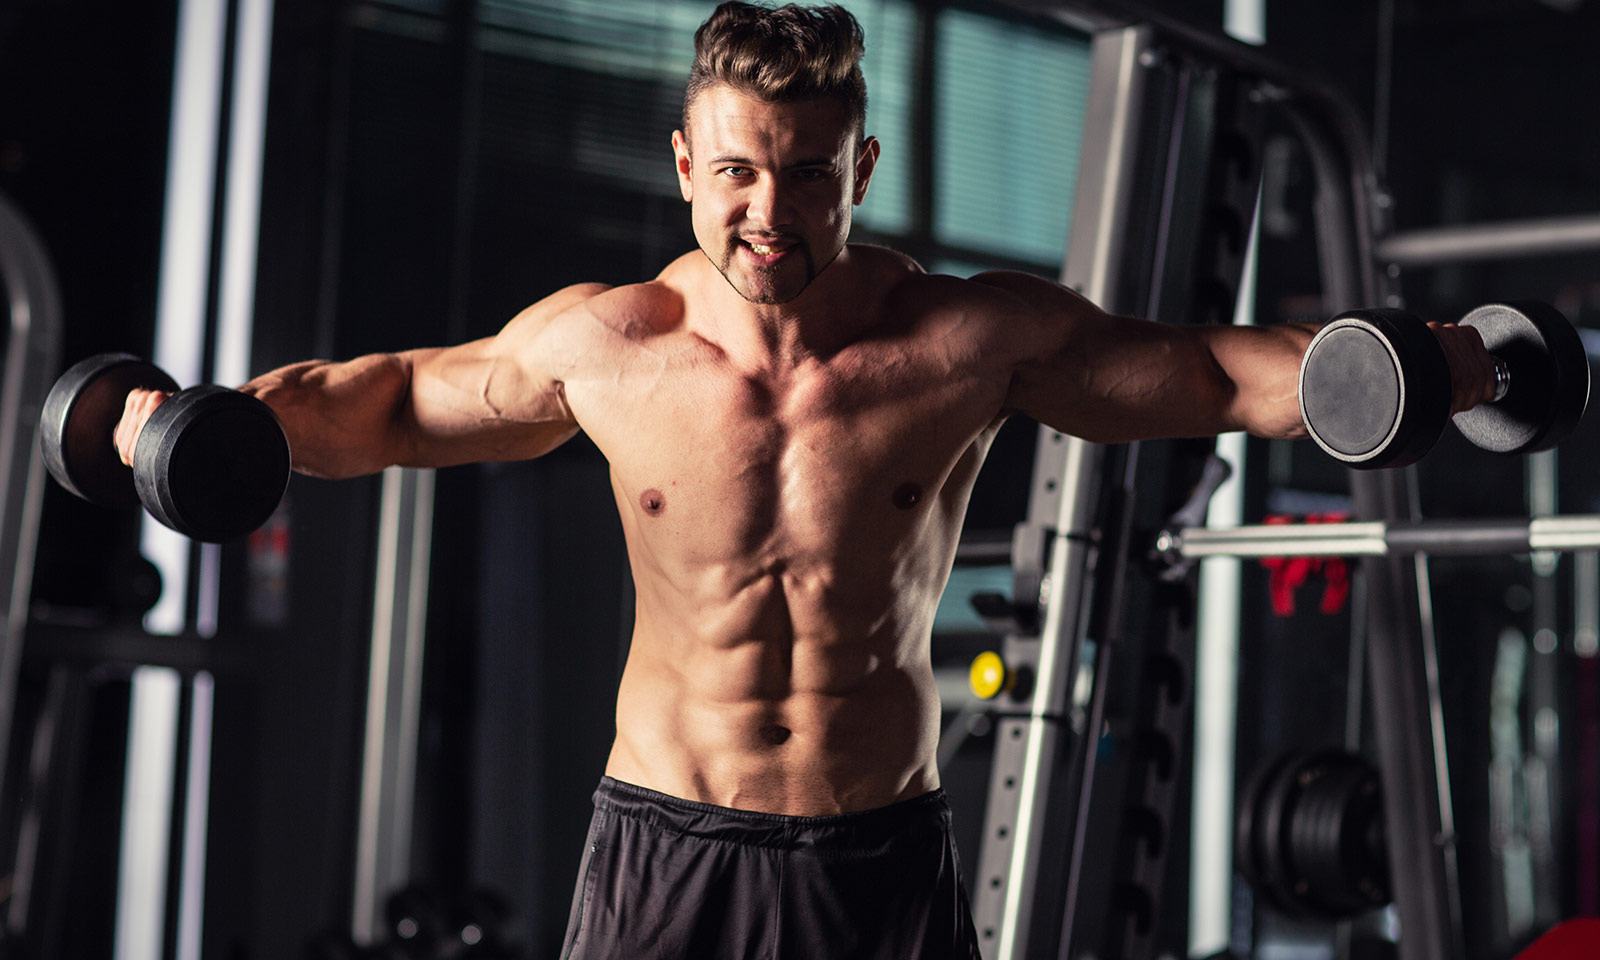 Six-Unique-Training-Techniques-to-Shock-Your-Muscles-into-Growing